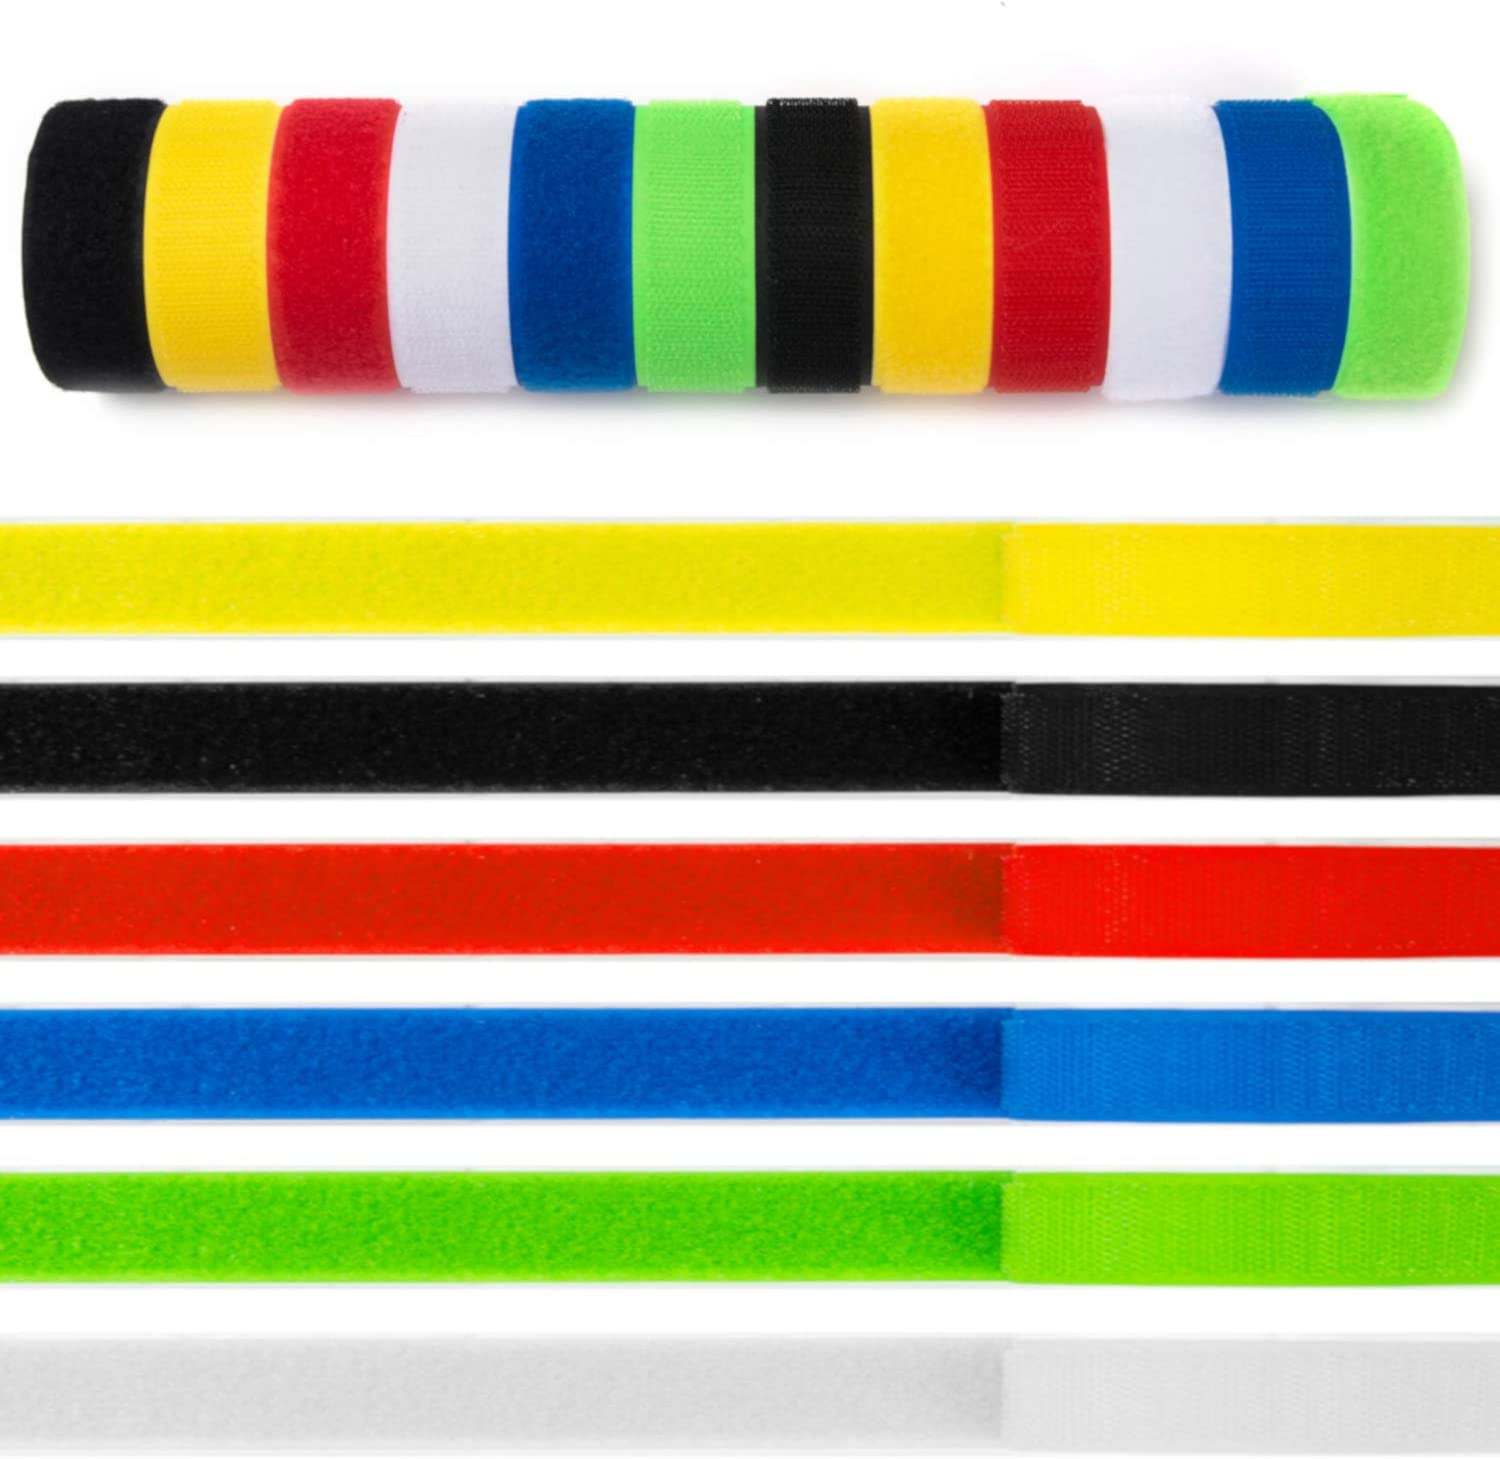 "Miracle Market 20 ft of Colorful ¾"" Hook & Loop Strips with Adhesive Backing - Heavy Duty Hook and Loop Tape for Home, Office, Classroom - Industrial Strength, Sticky Back Fastener Strip, 6 Colors"